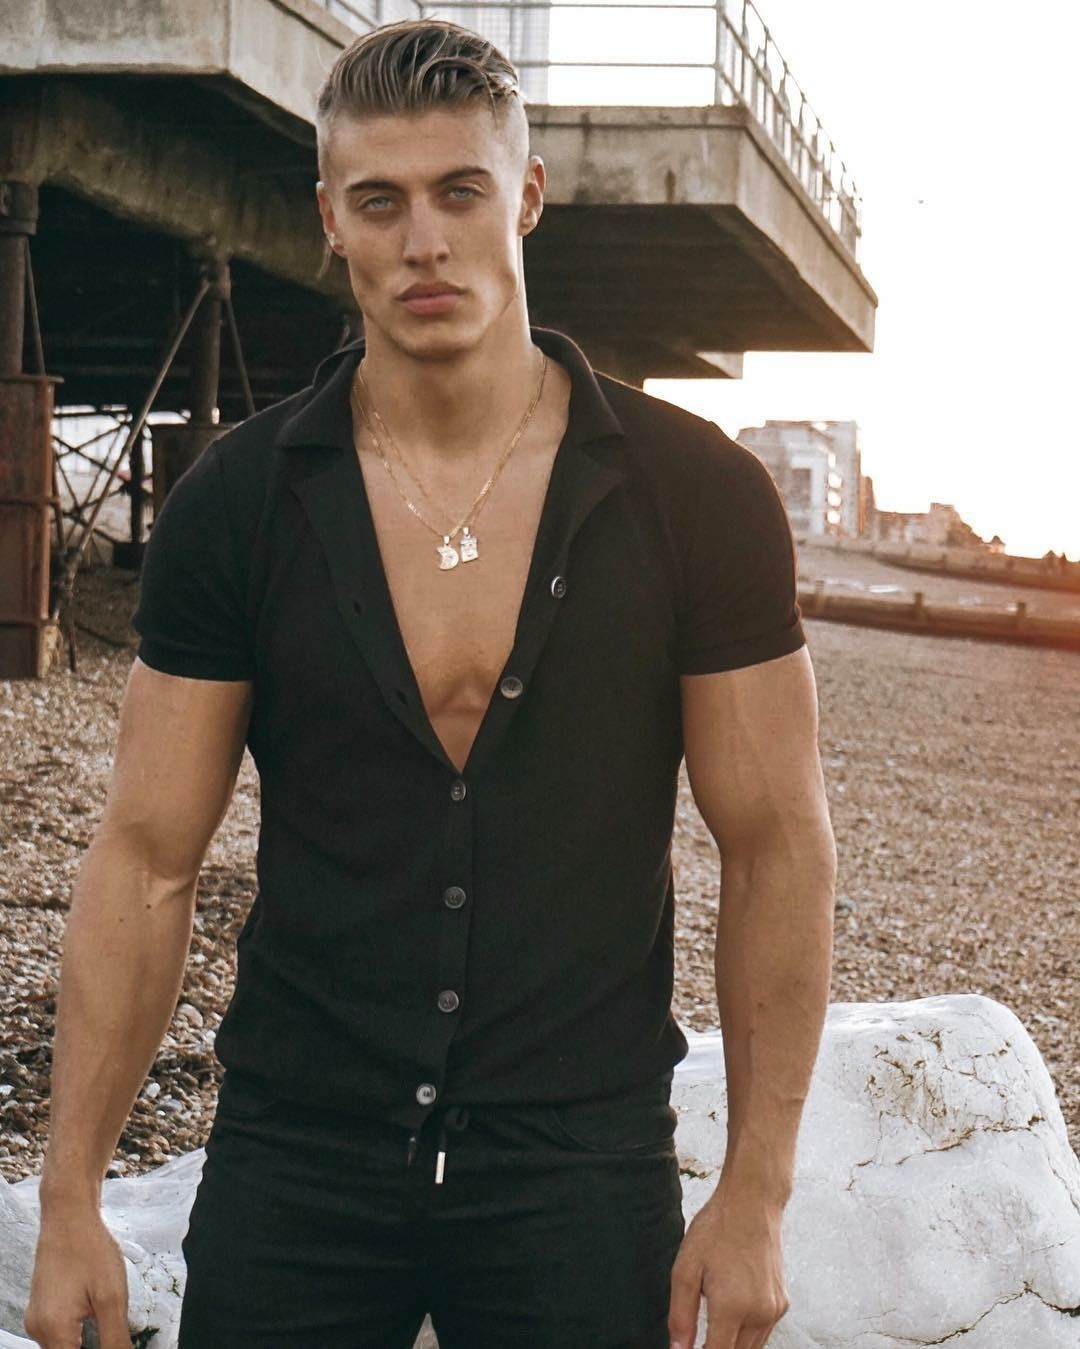 Guys hot russian 25 Hottest